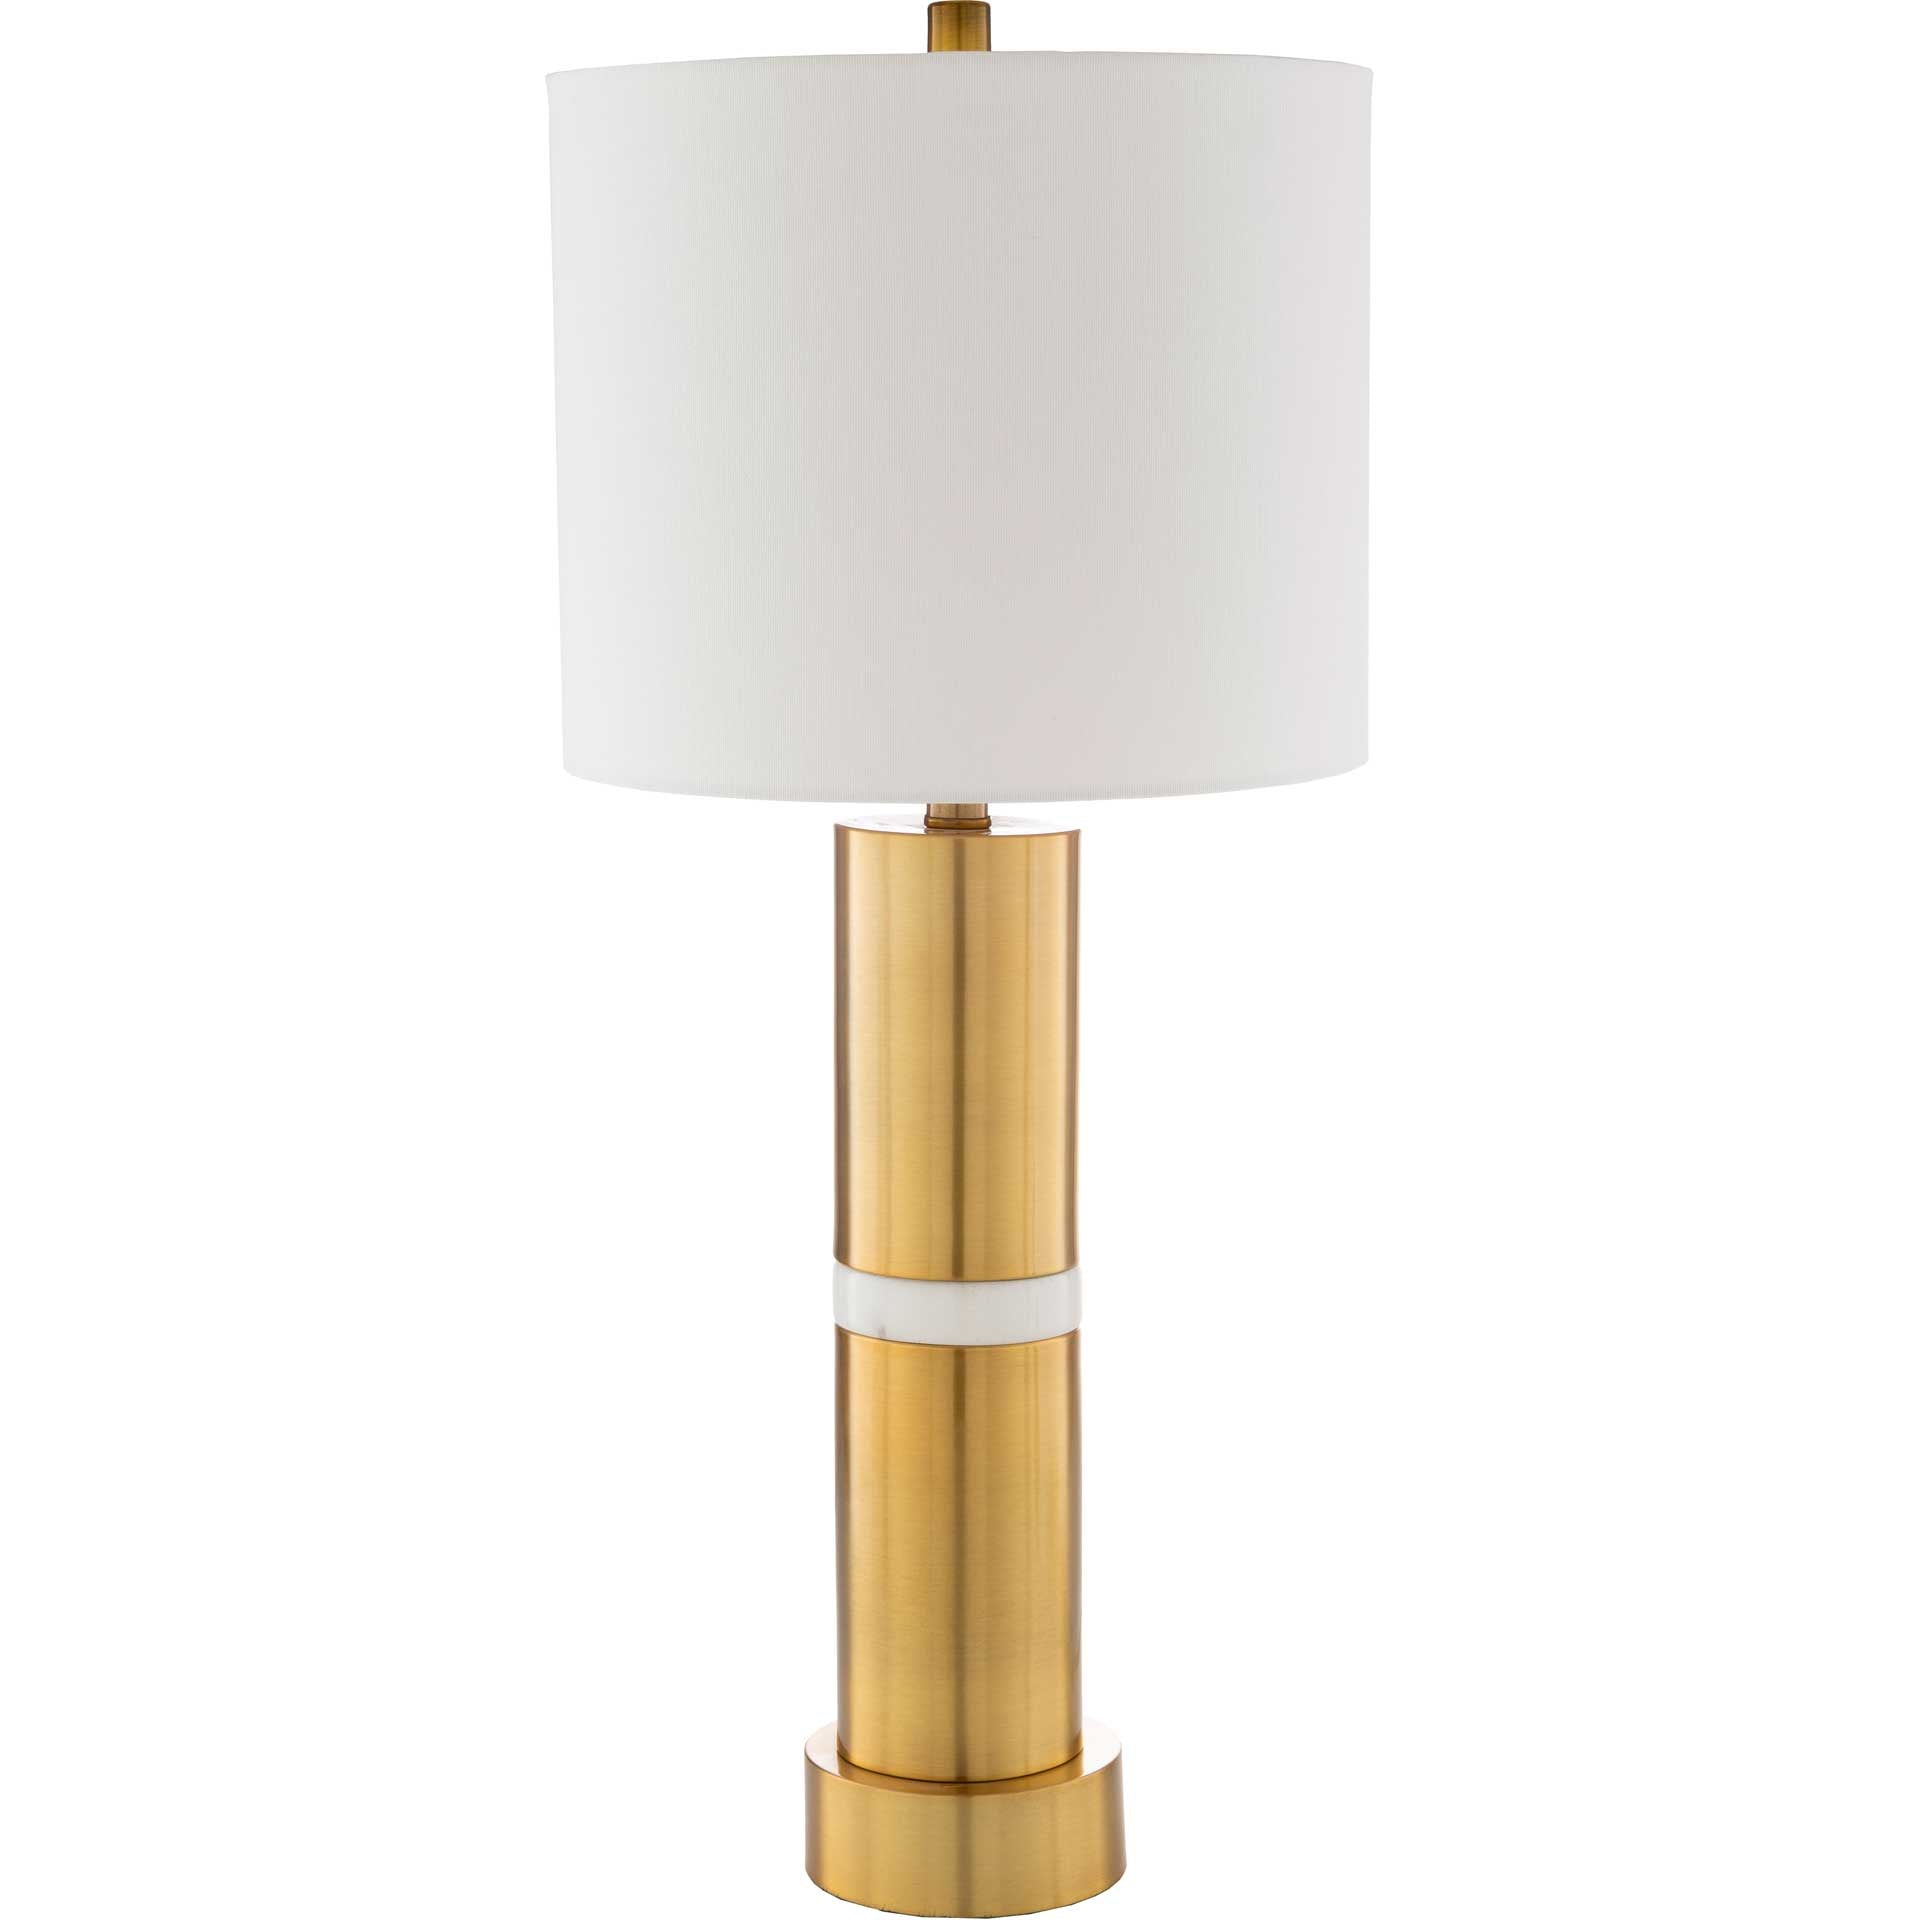 Yaseen Table Lamp White/Brass/Off-White